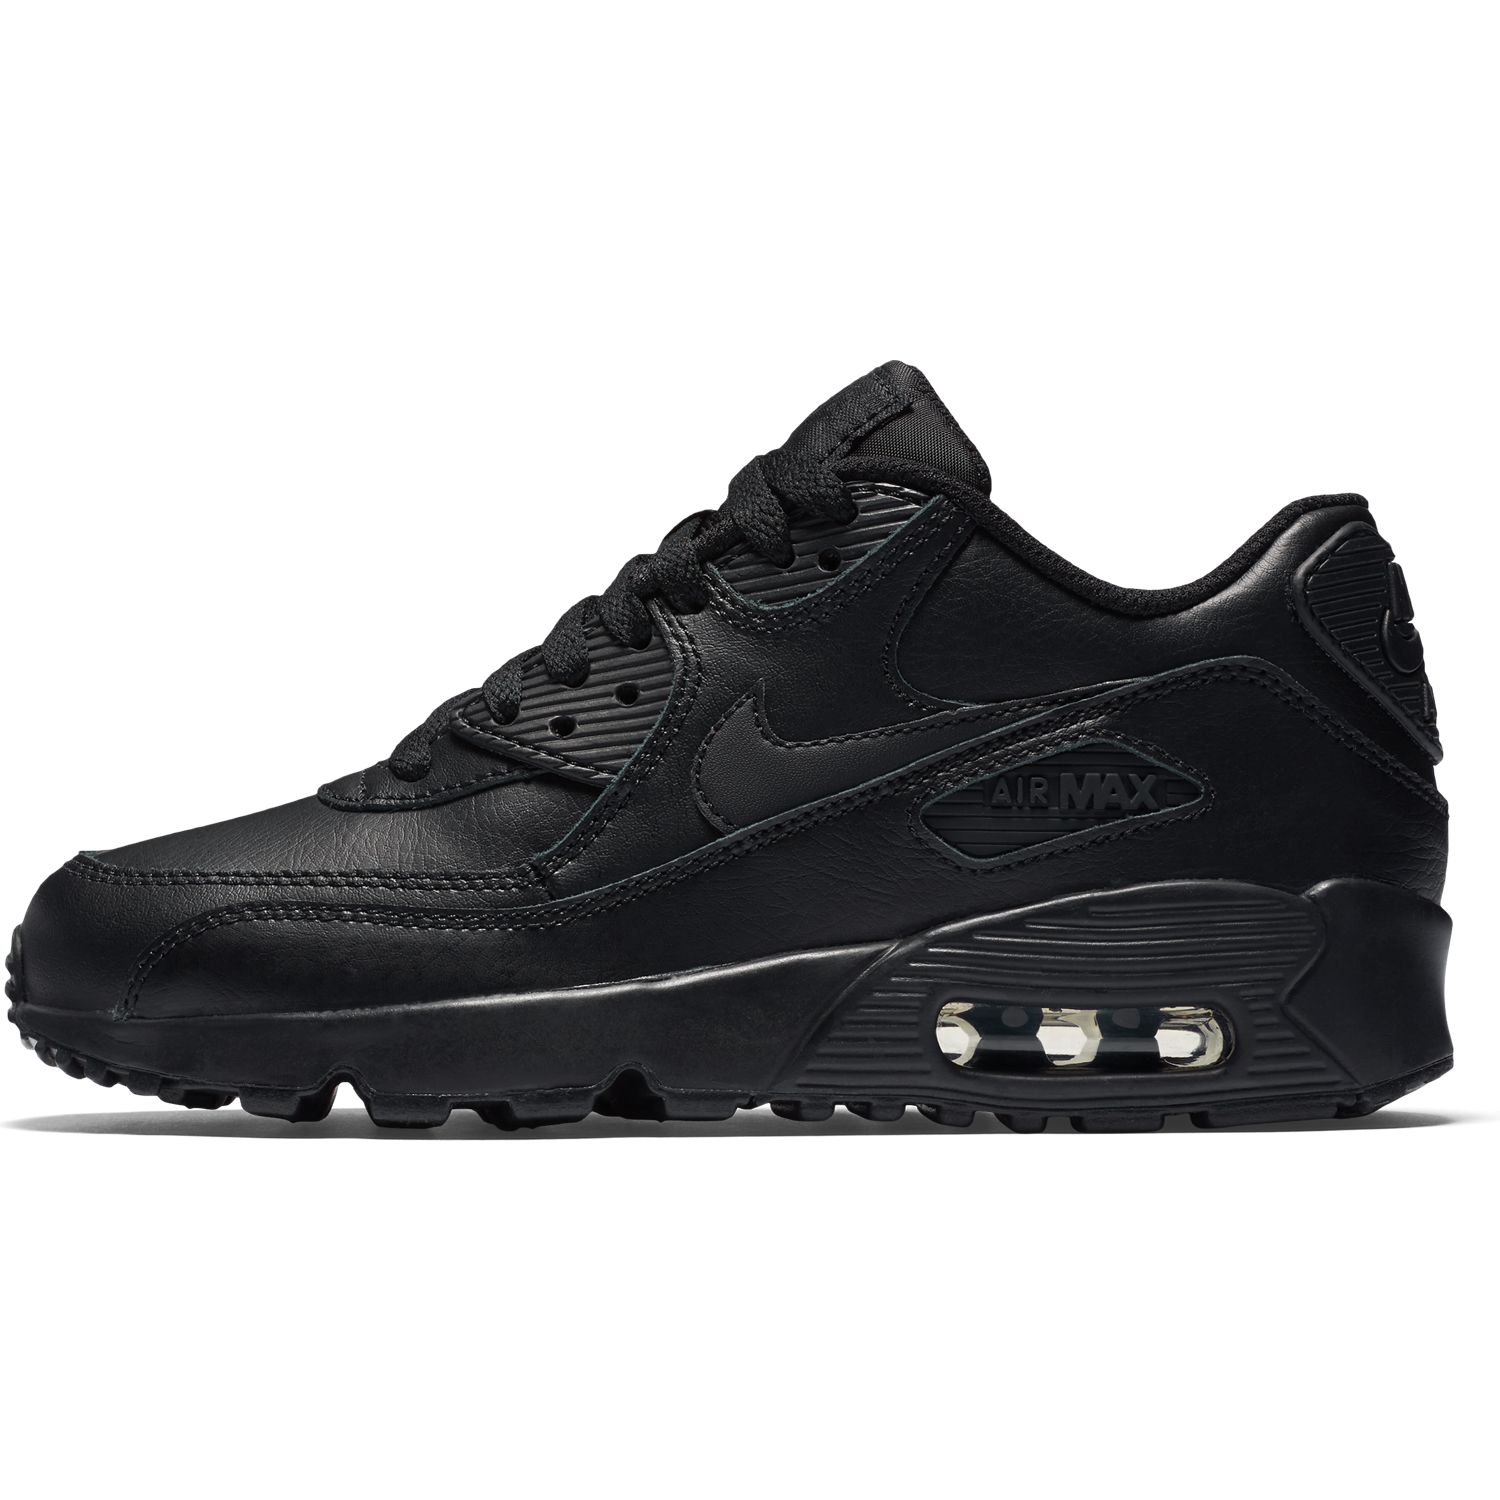 BUTY JUNIOR LIFESTYLE NIKE AIR MAX 90 LEATHER CZARNE 833412-001